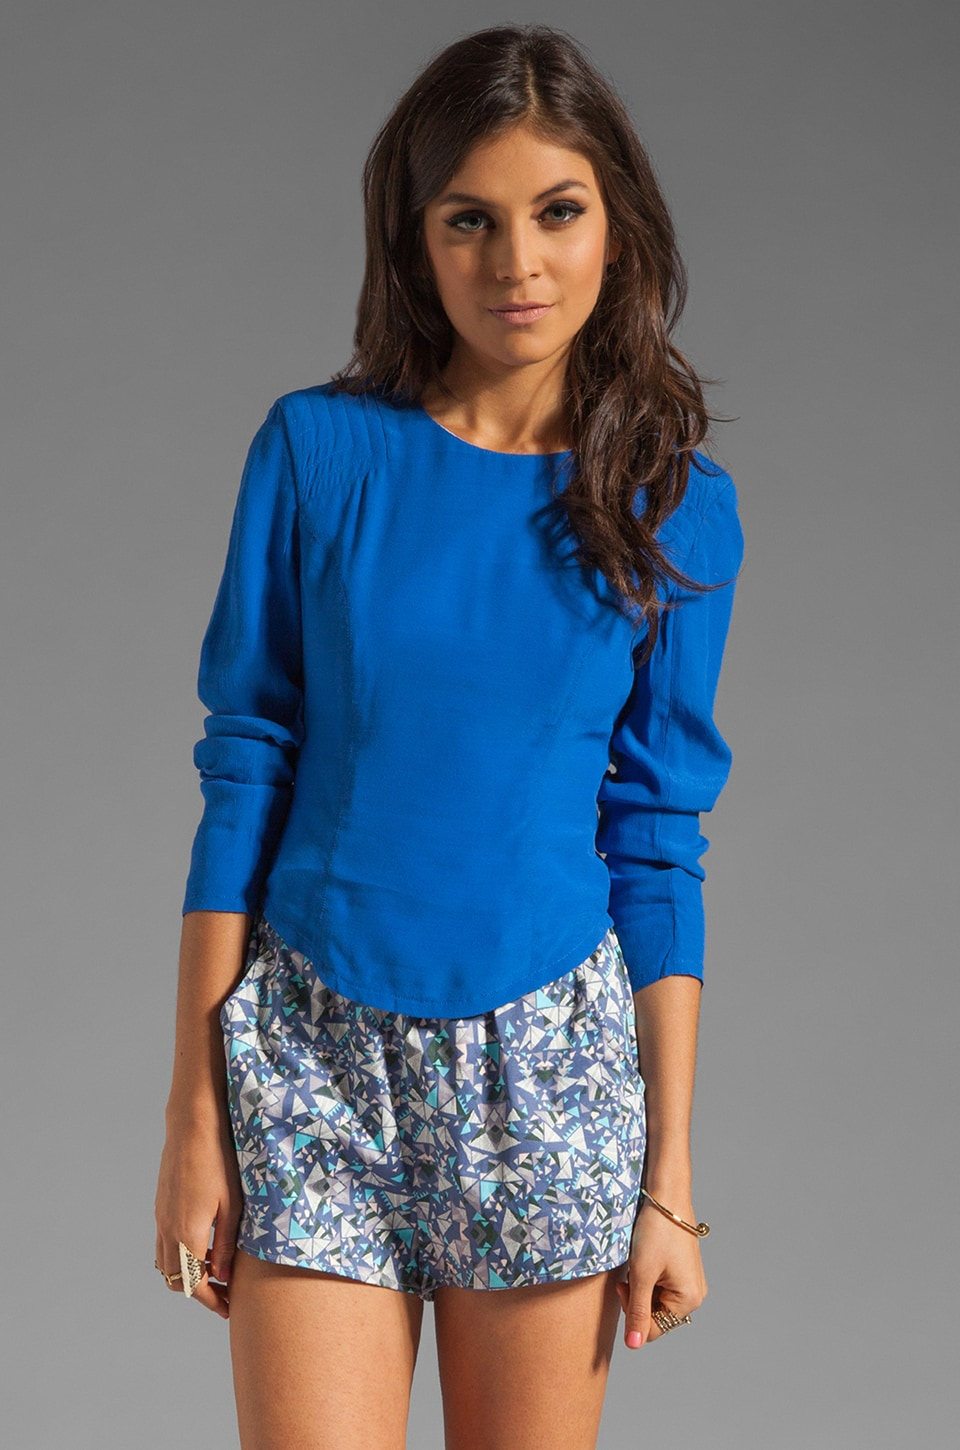 Finders Keepers Your Song Long Sleeve Top in Nautical Blue